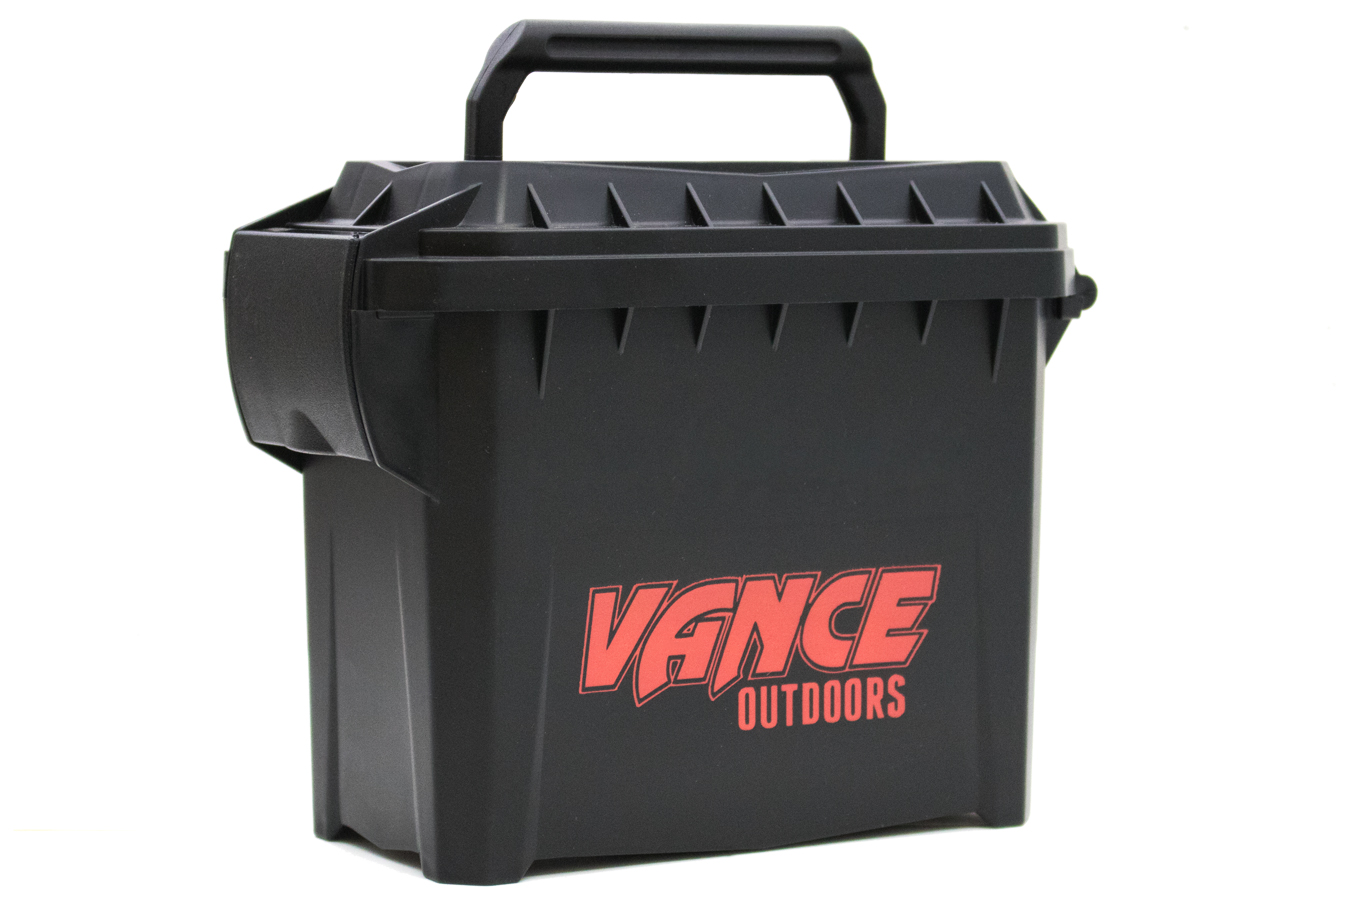 30MM VANCE LOGO AMMO CAN